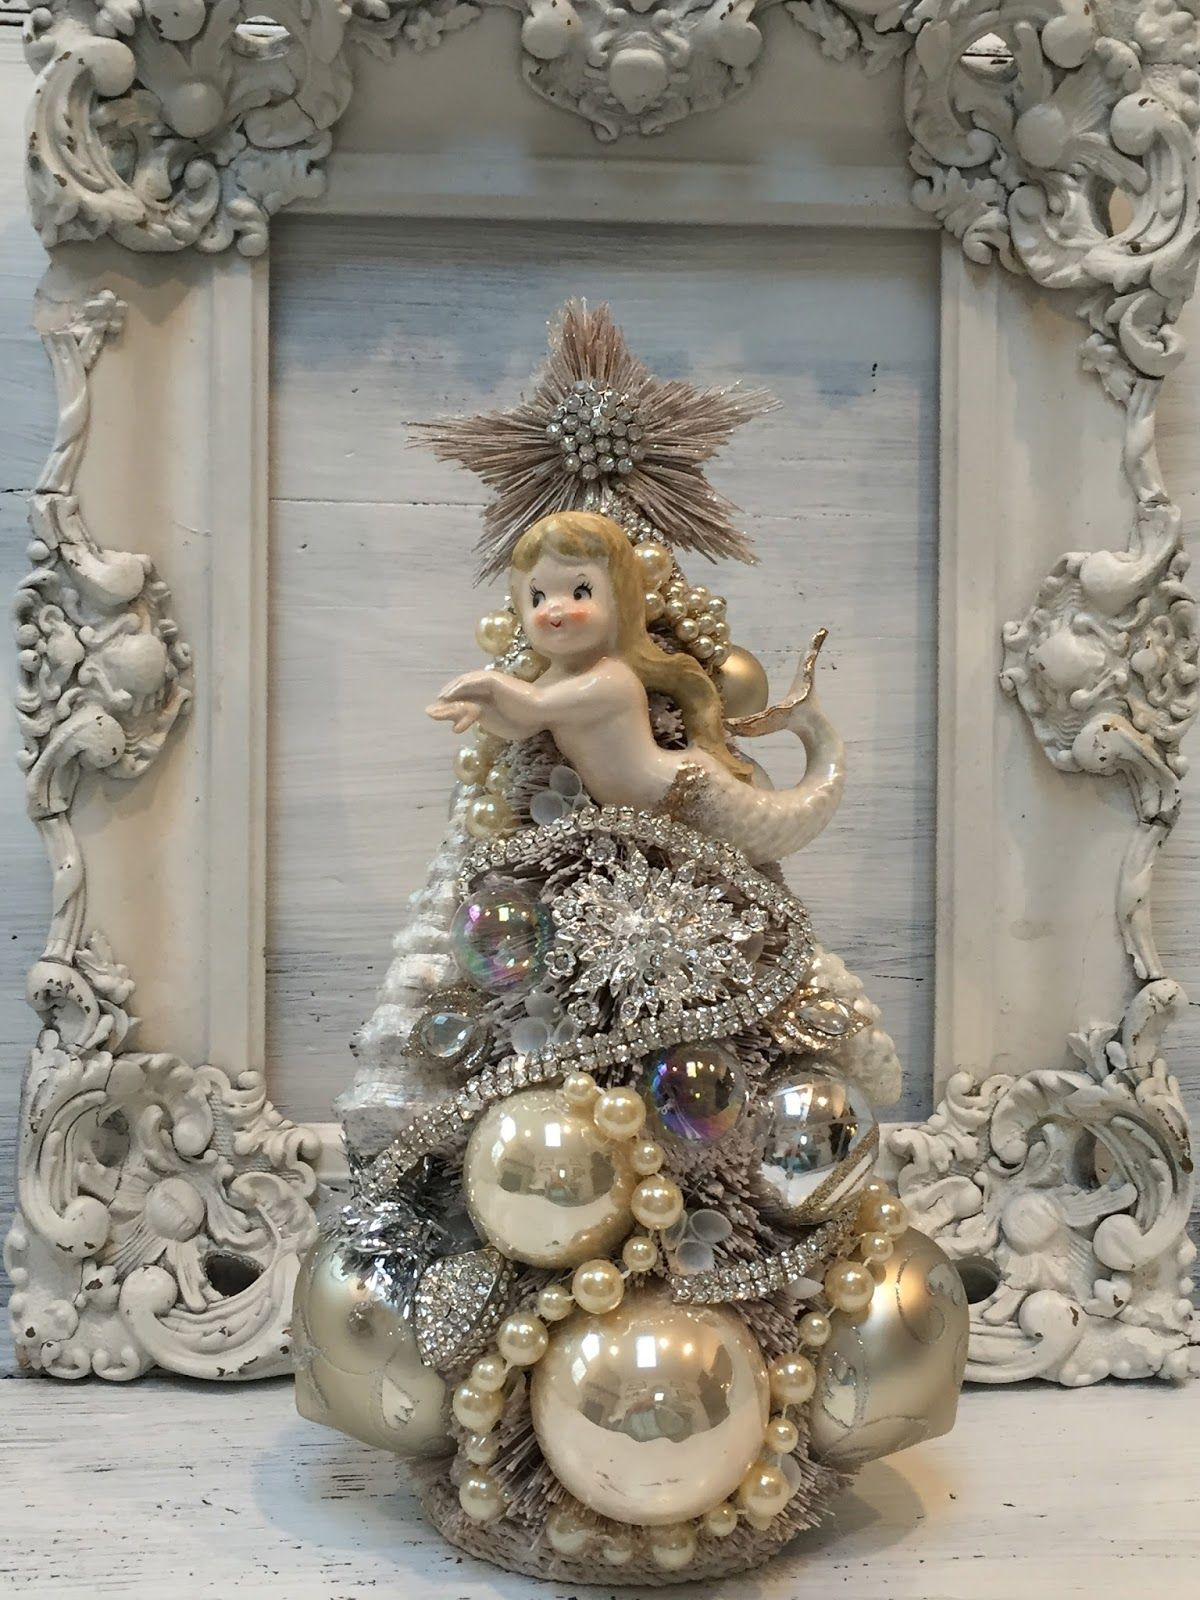 Still Time To Add Some Sparkle To Your Holiday Decor